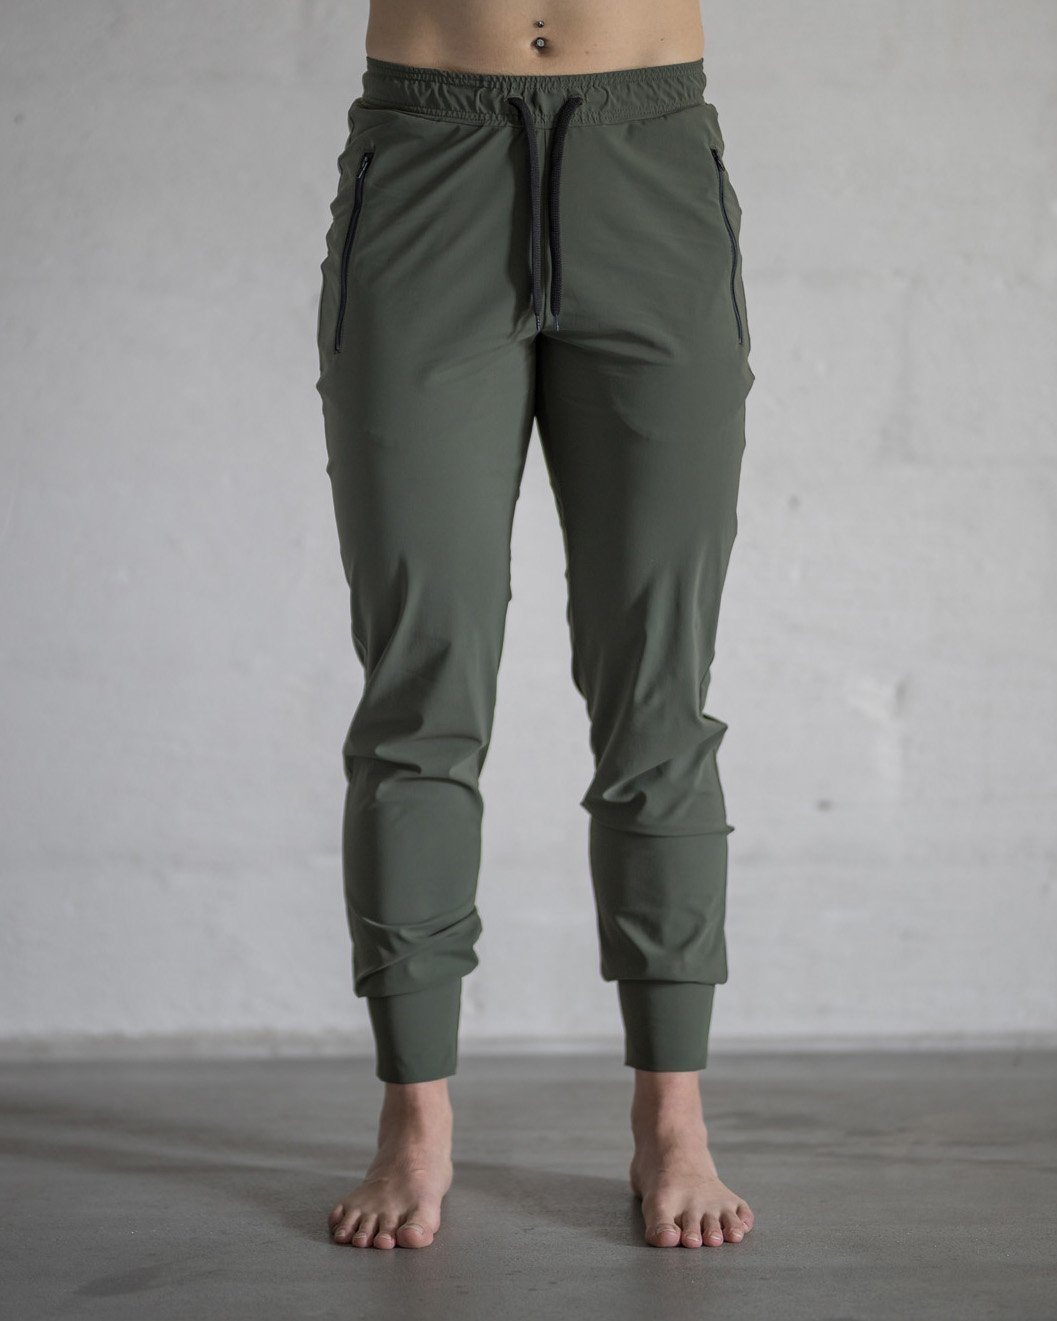 Népra - Yed Joggers - Army - Training Pants - Weekendbee - sustainable sportswear